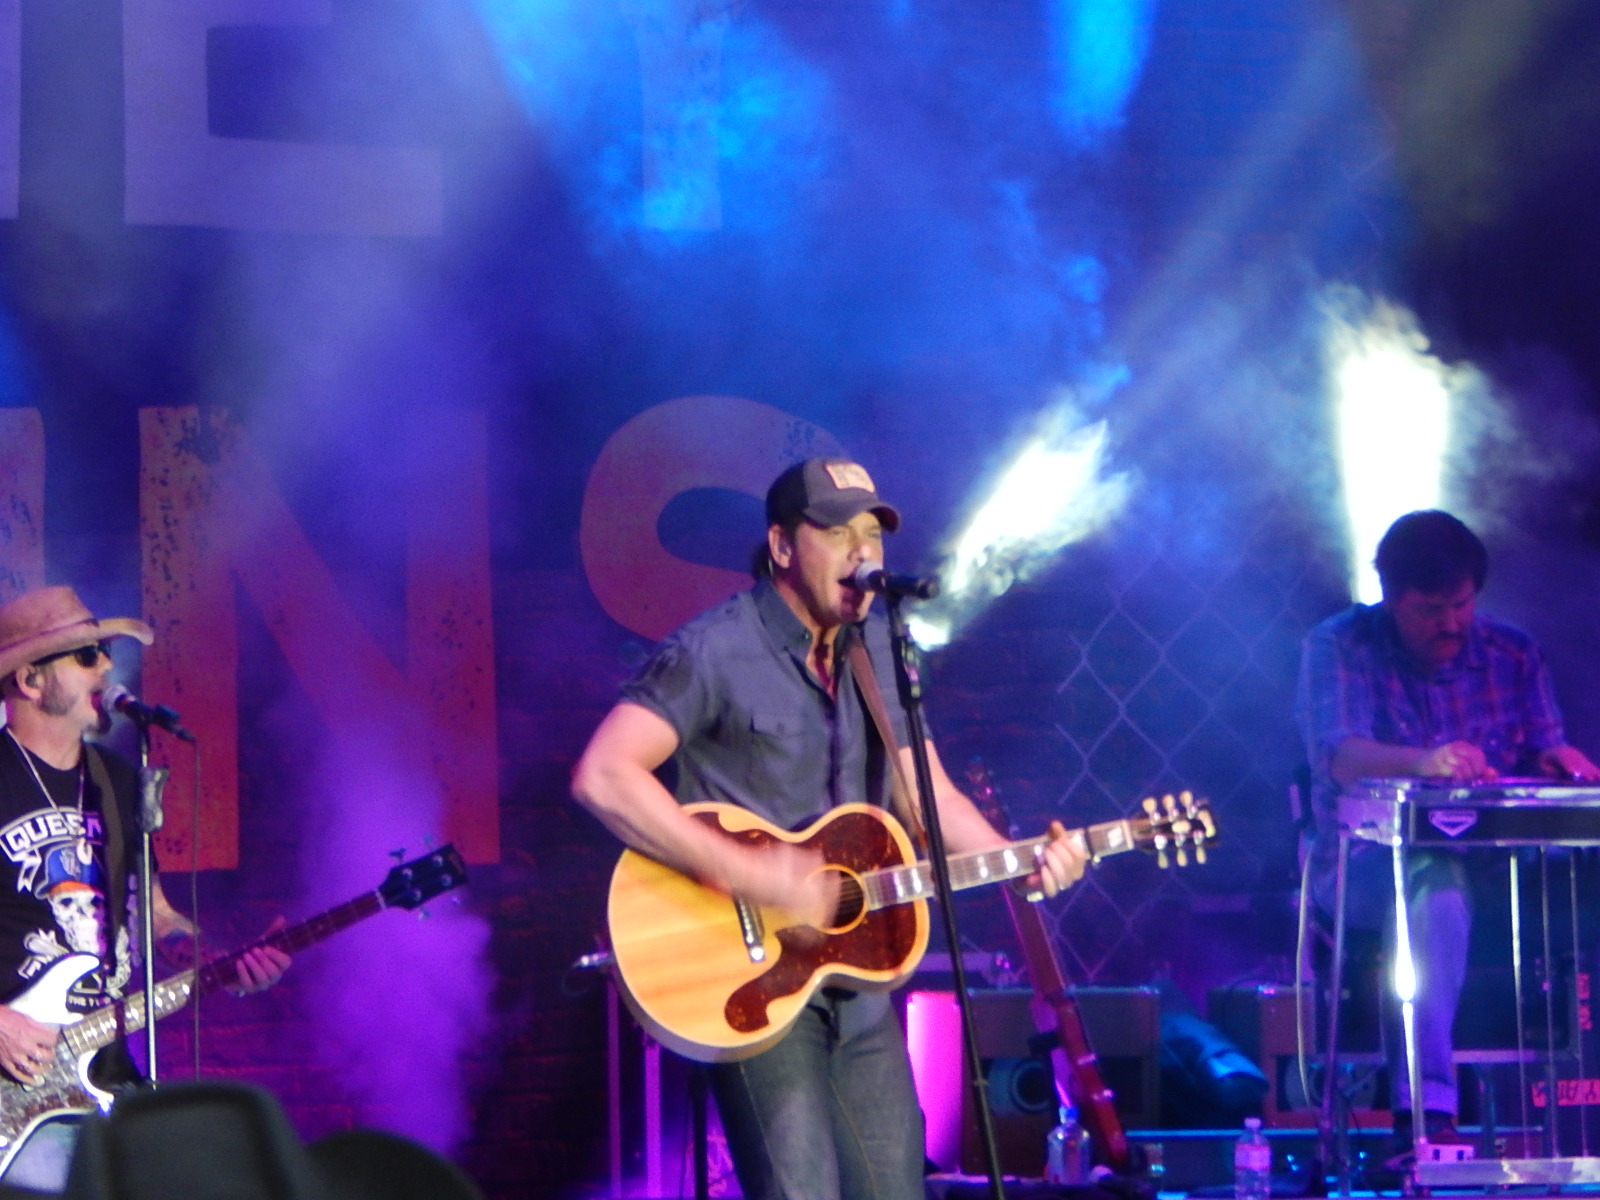 country singer Rodney atkins sings country music  with confidence